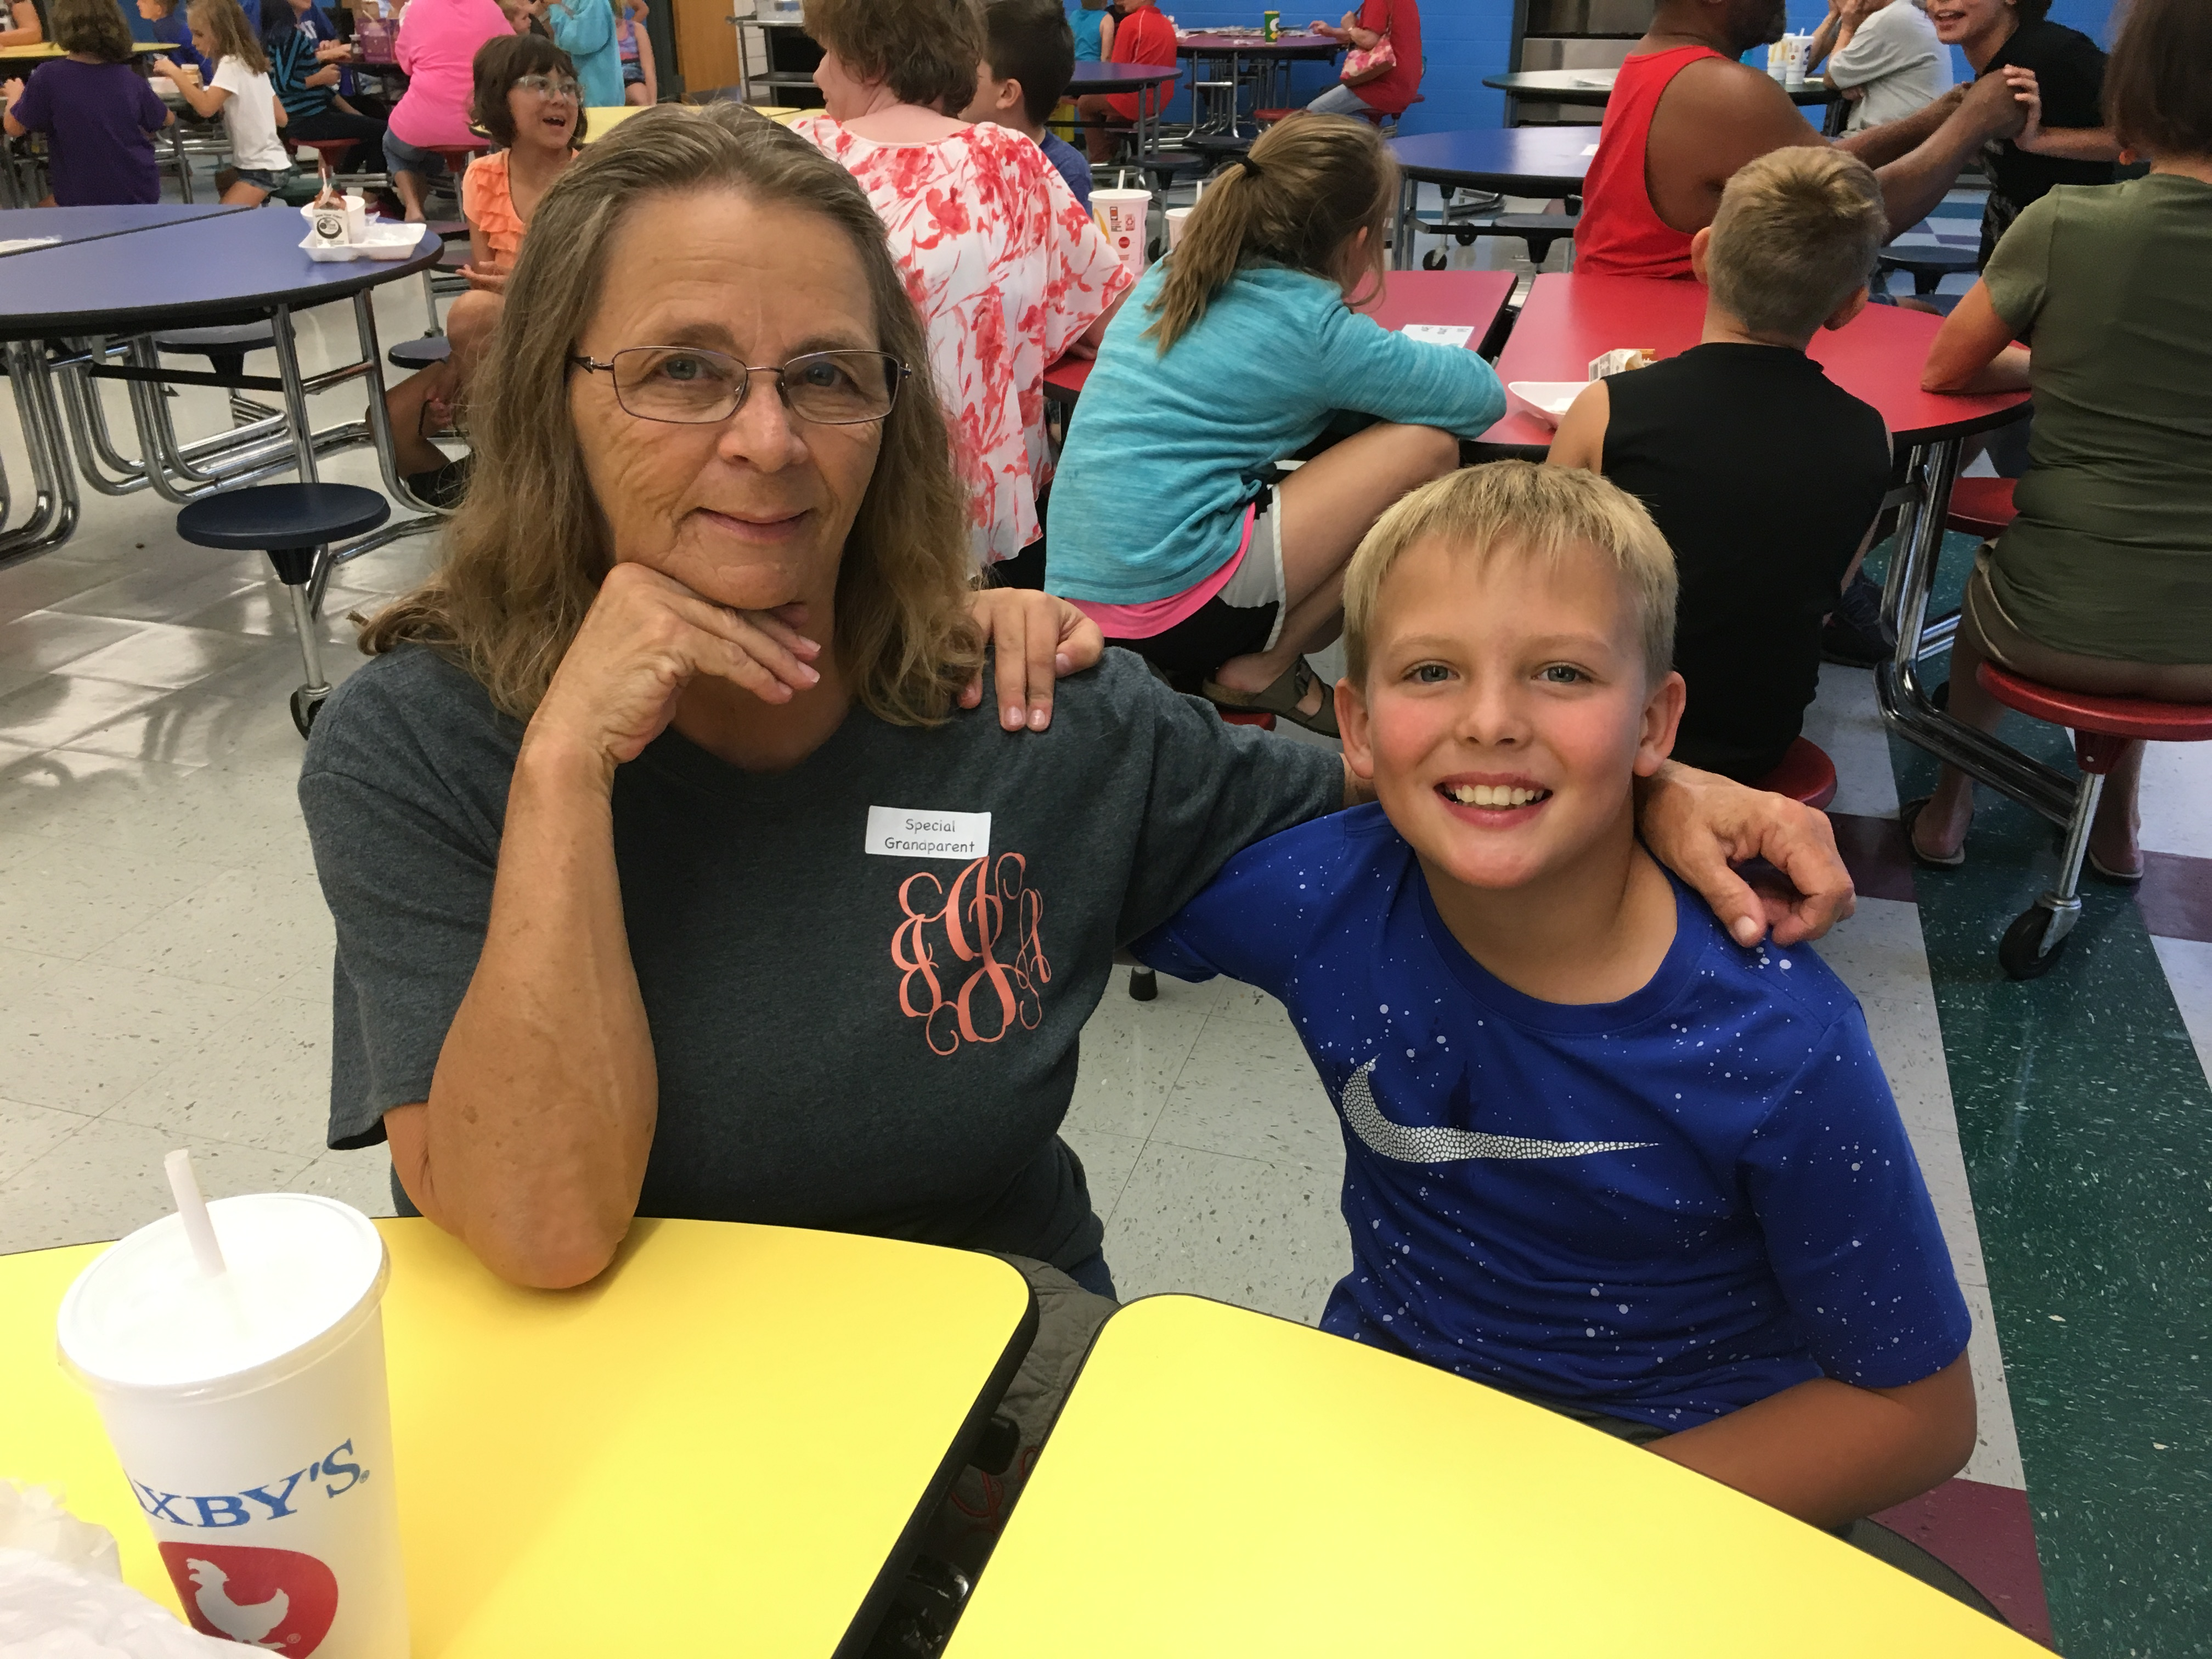 One of our 4th graders and his grandma.